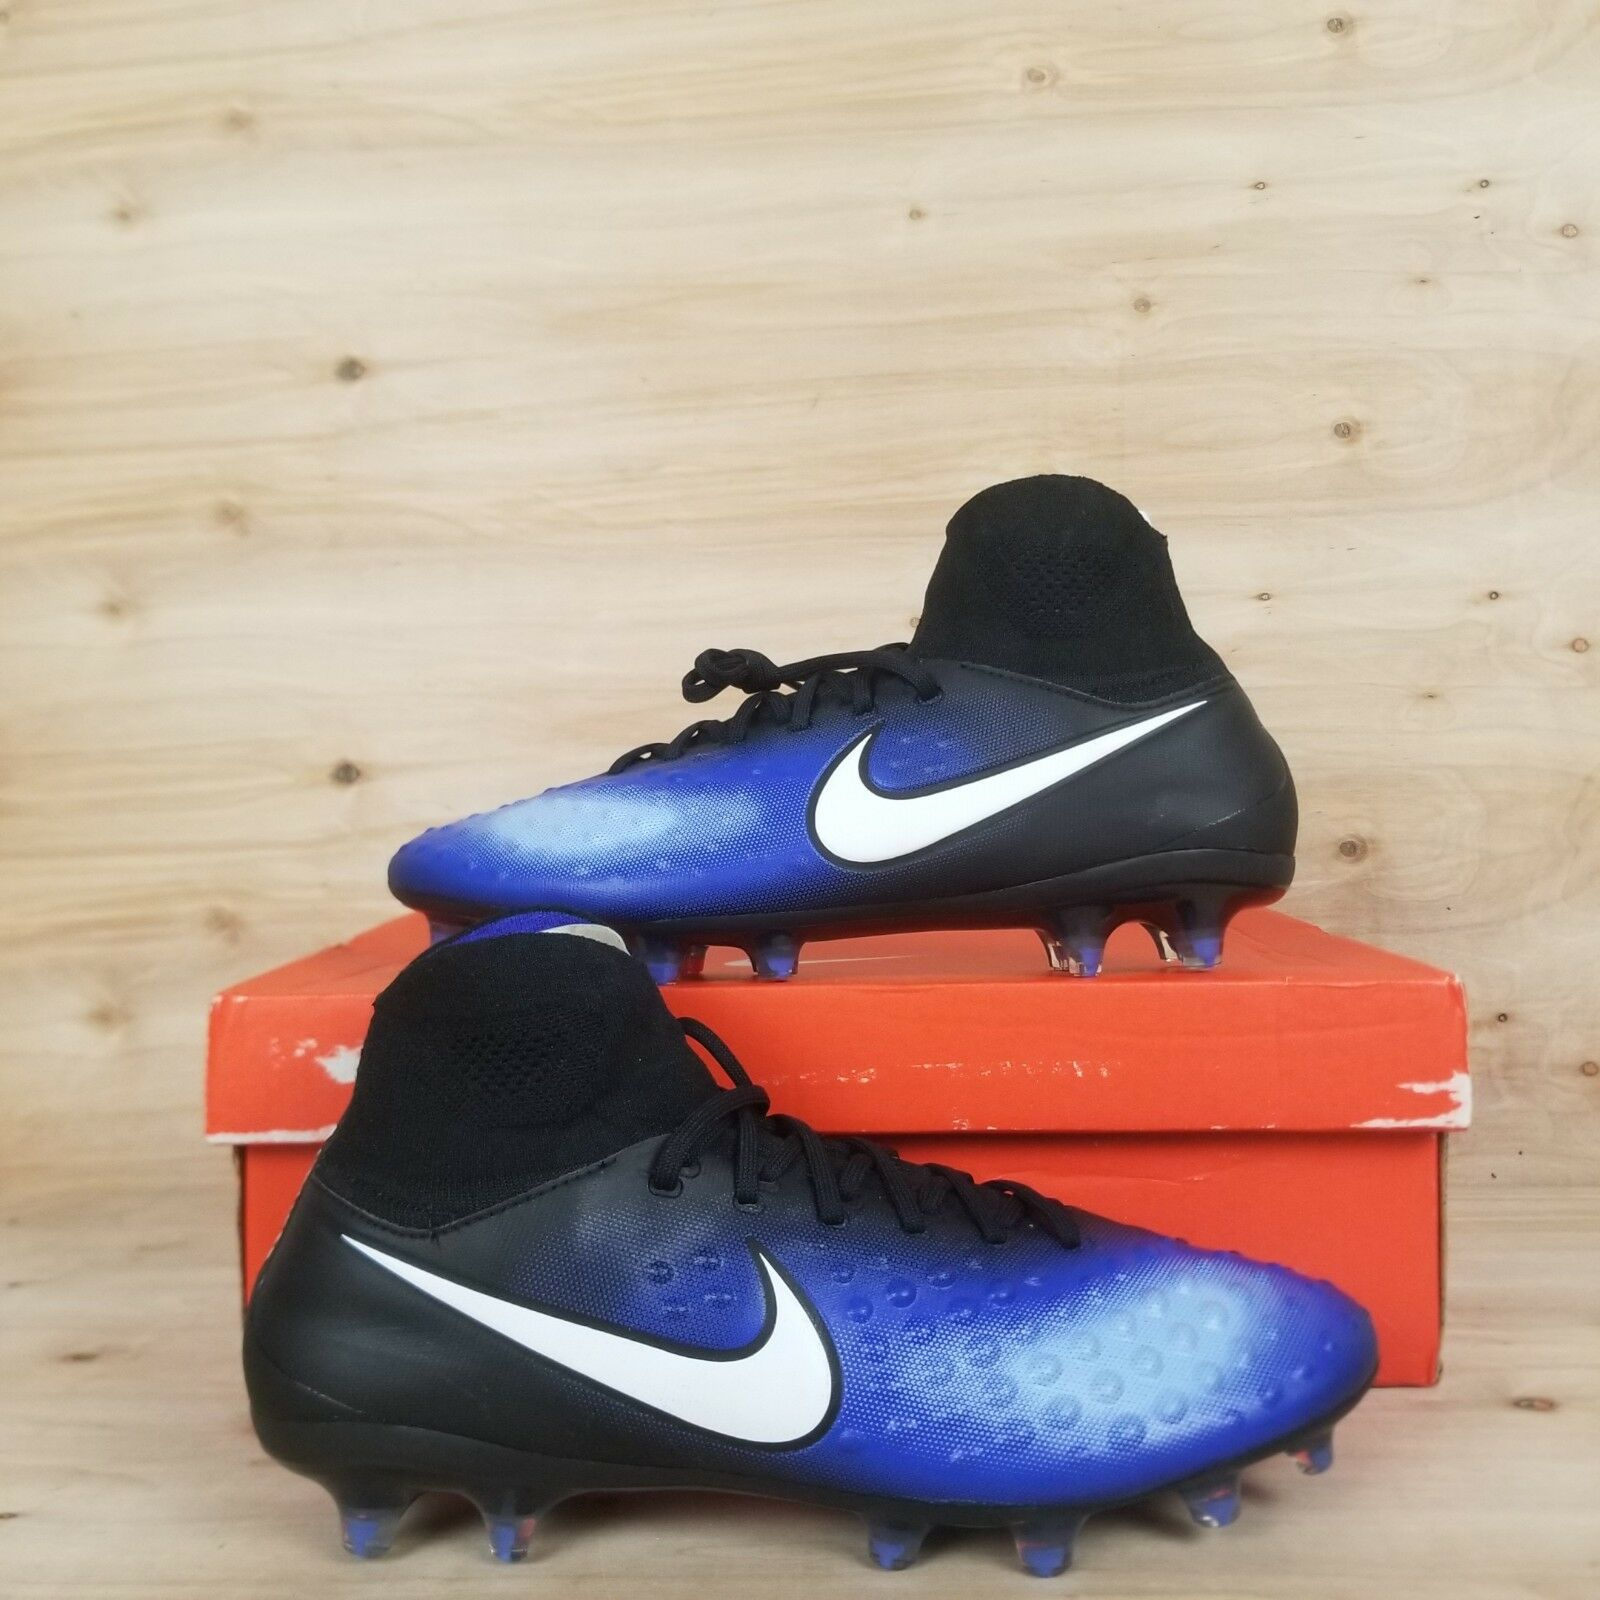 NIKE MAGISTA ORDEN II FG BLACK WHITE PARAMOUNT blueE [843812-018] MEN'S SZ.10